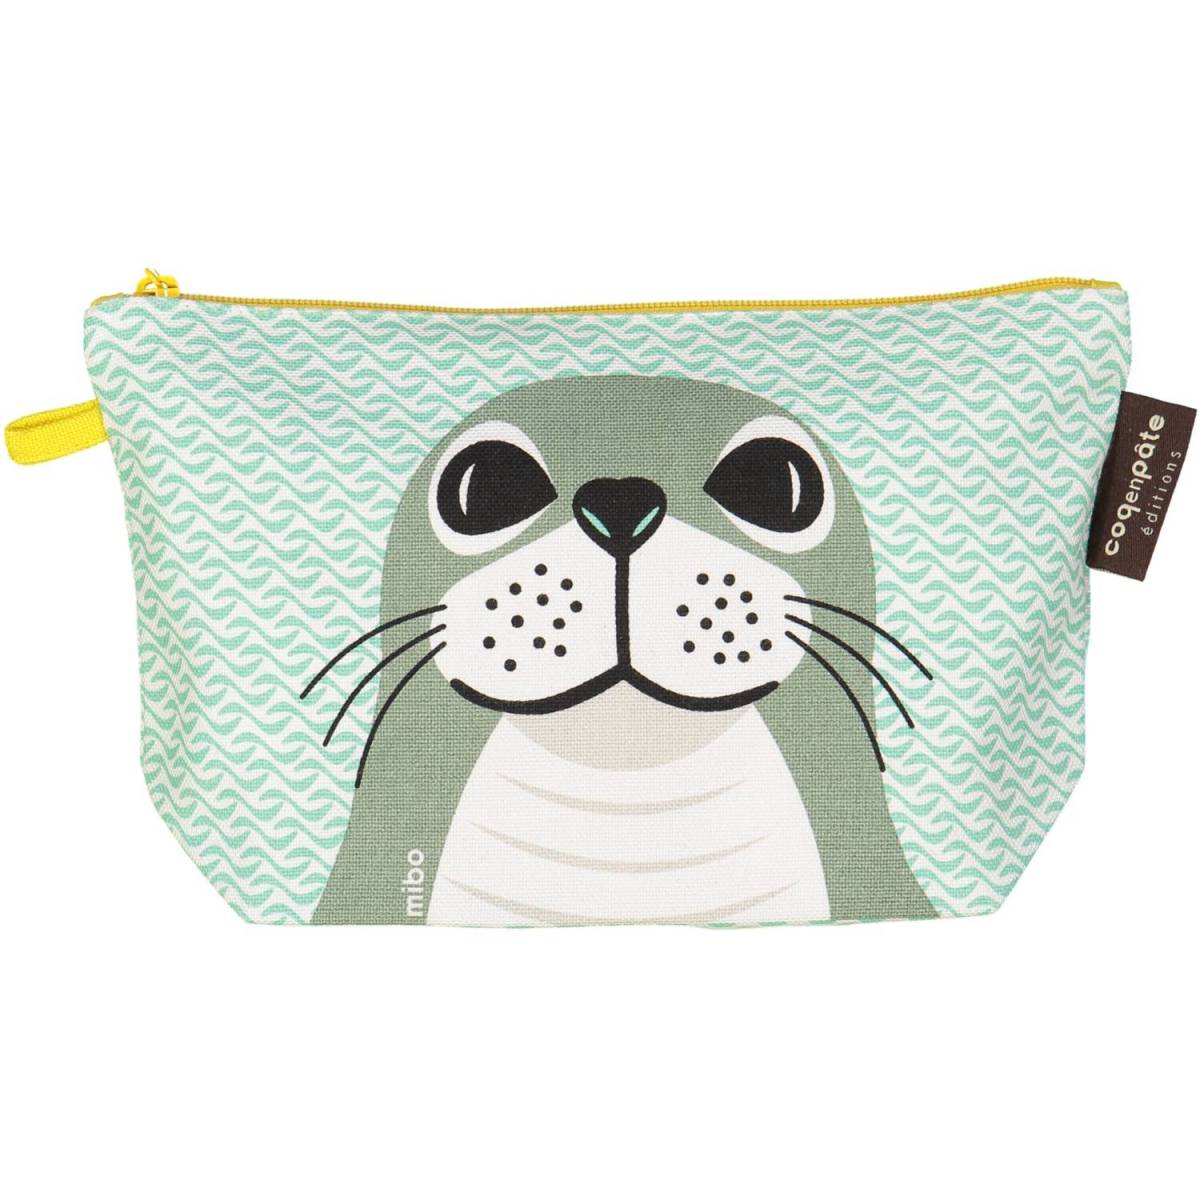 Seal pencil case